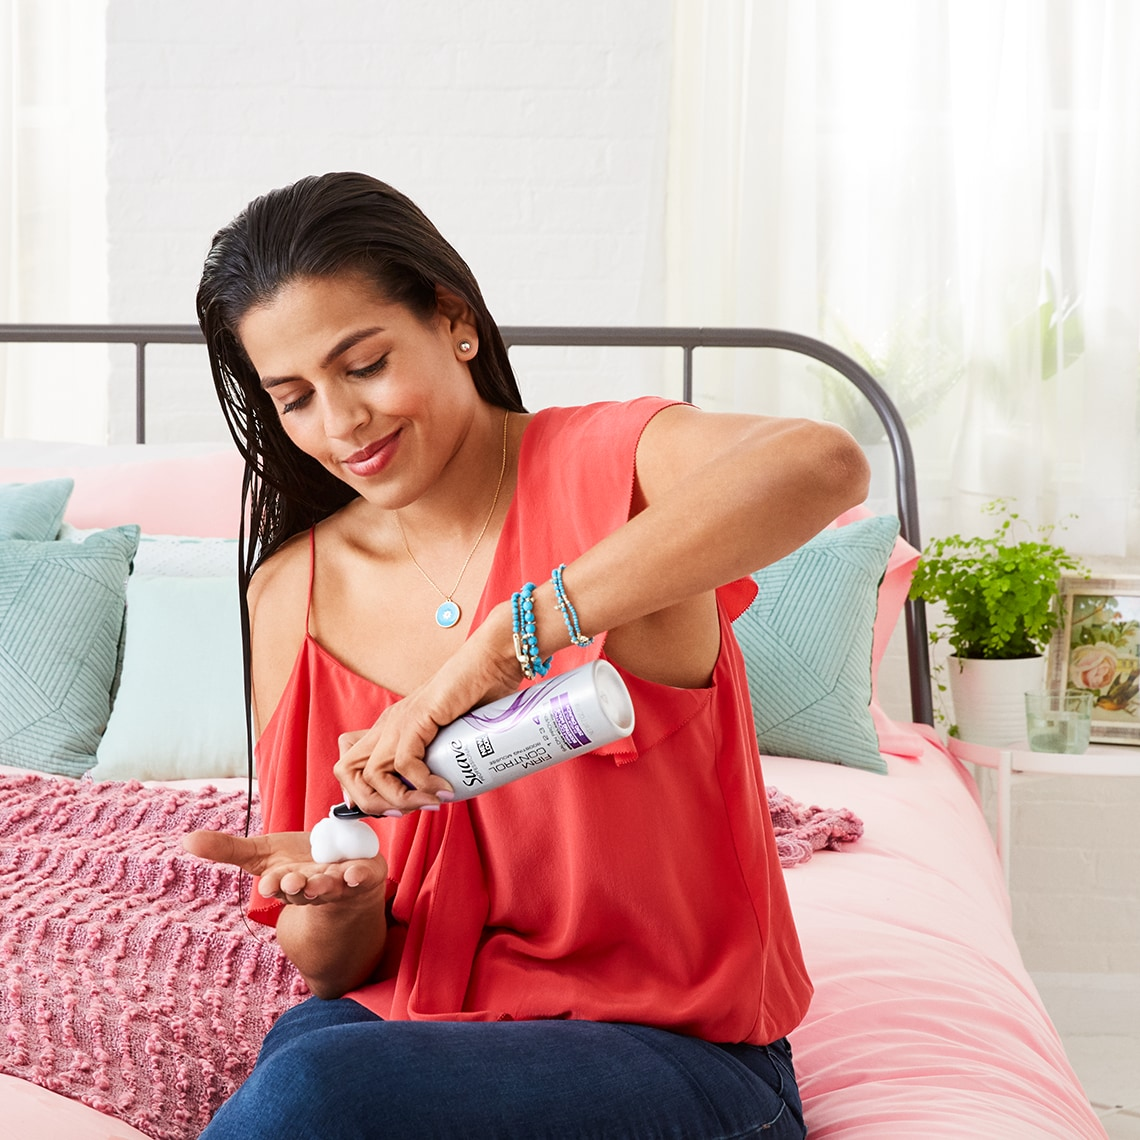 A woman with wet hair sitting on her bed. She is dispensing Suave Firm Control Mousse into her hand to apply to her hair.